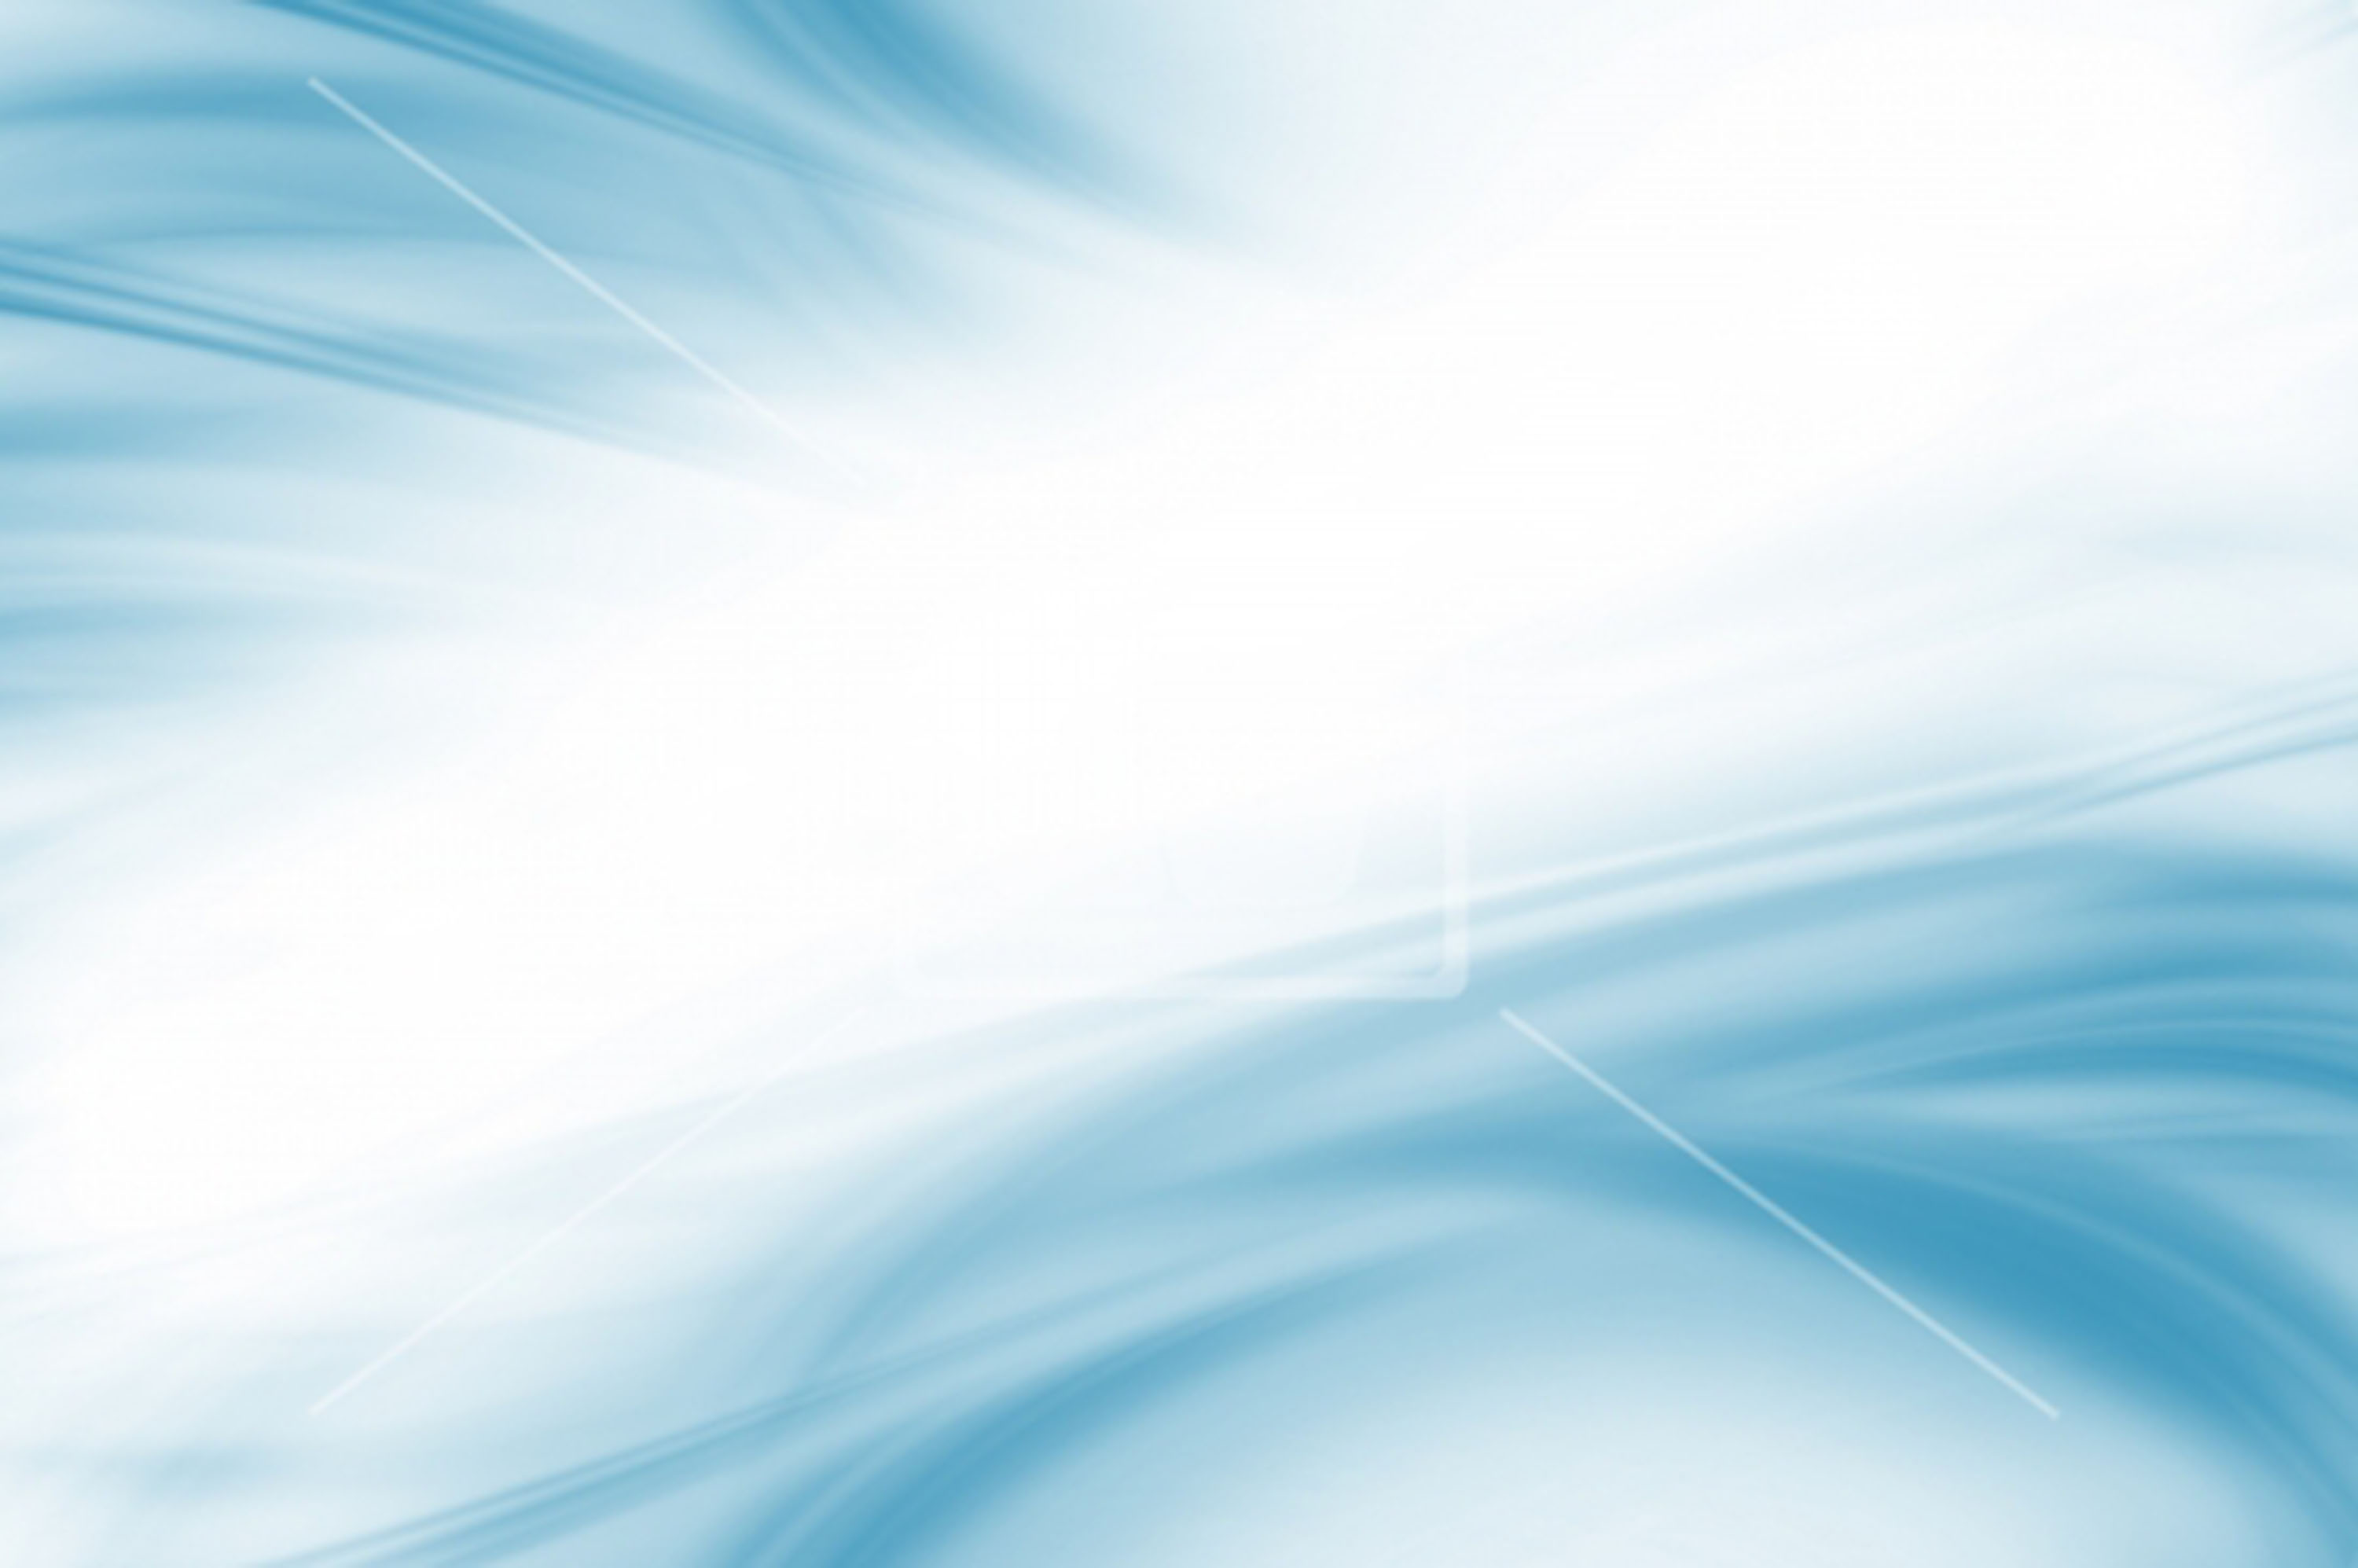 Light Blue Desktop Wallpapers #3274